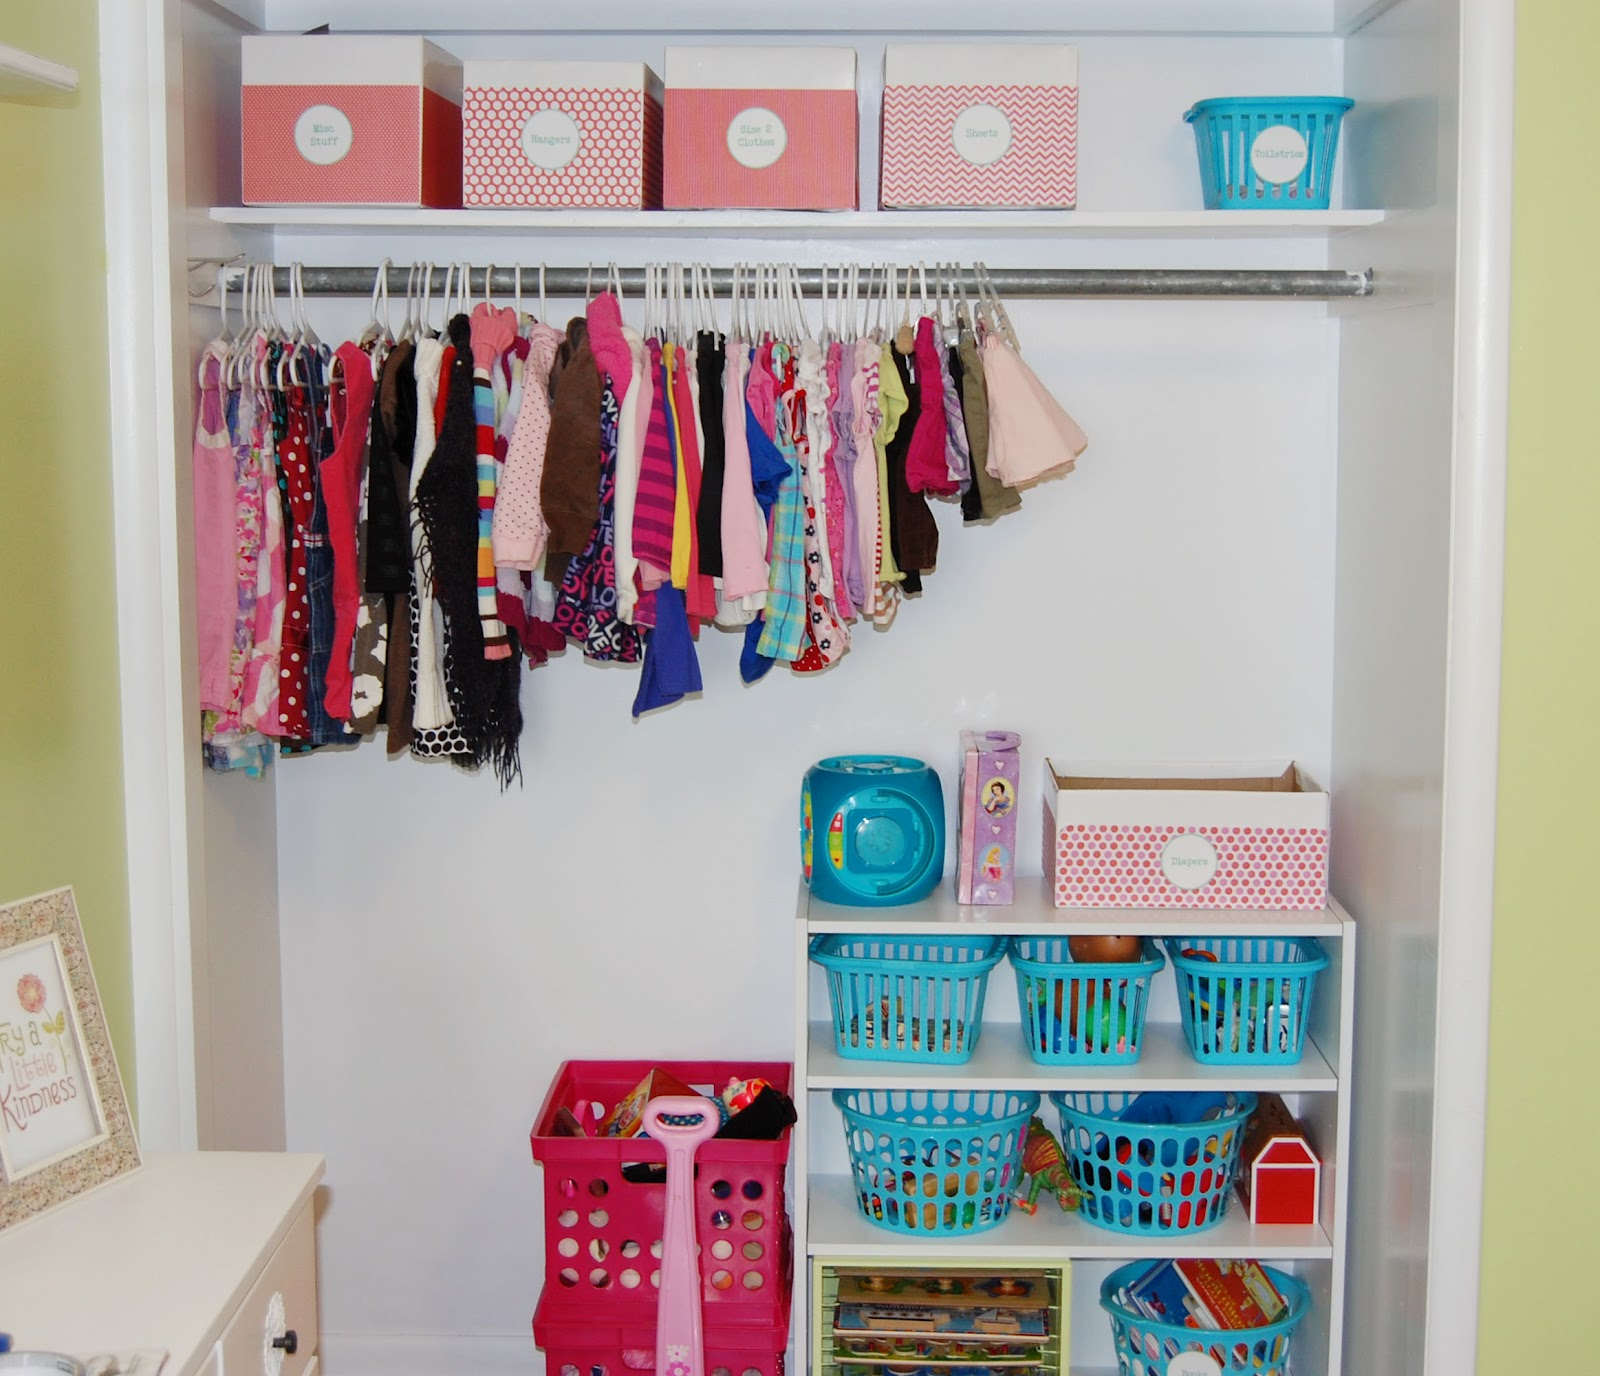 Fill Small Space using Brilliant Closet Organizer Ideas with High Clothes Hanger and White Toys Shelves